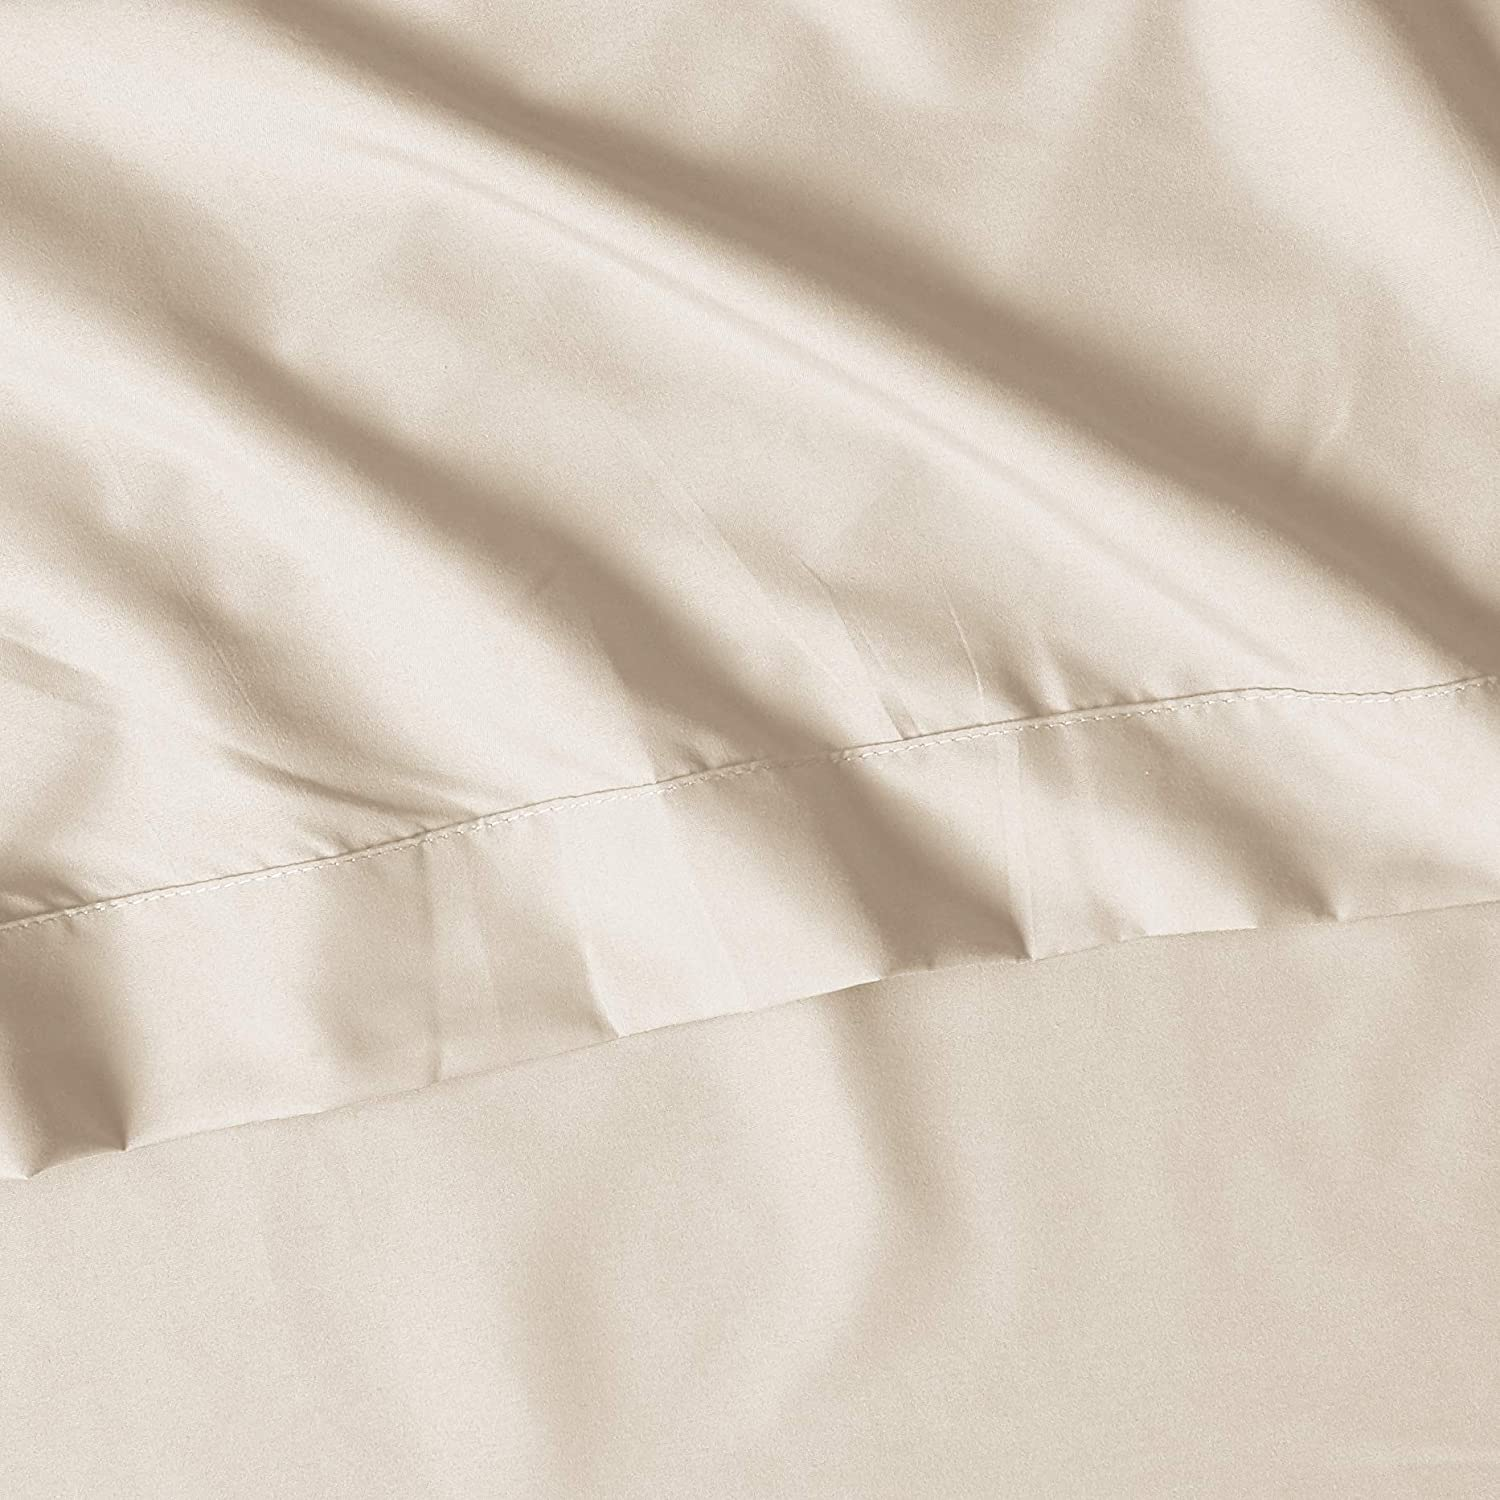 Cal King Aqua 6 PC Sheets Clara Clark 6-Piece 100/% Soft Brushed Microfiber Bedding Set Luxury Pleated Pillowcases Cool /& Breathable